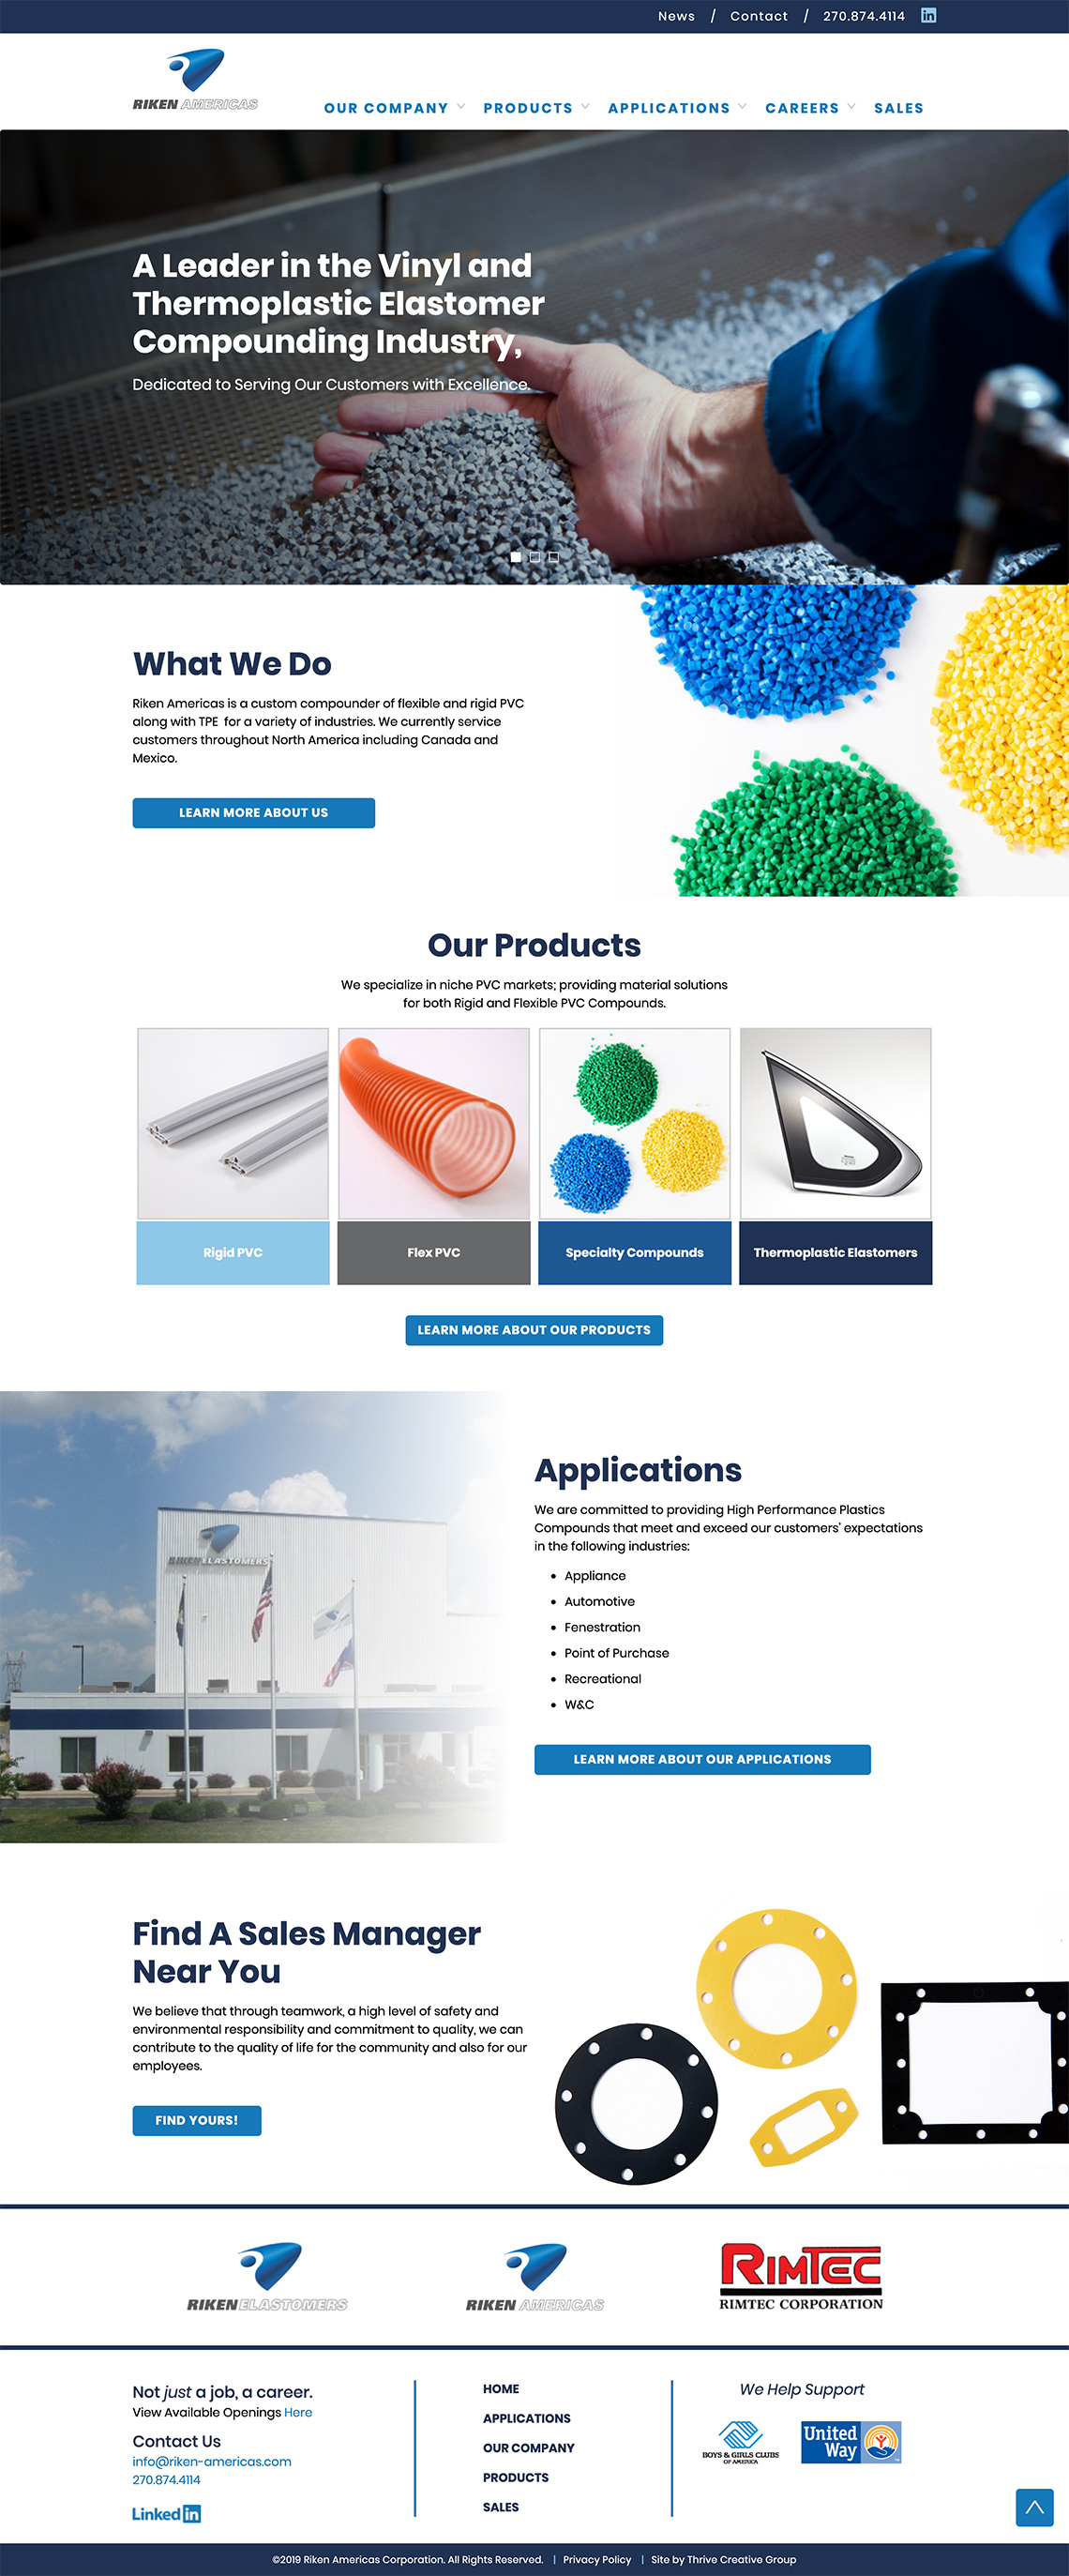 Riken-Americas Corporation Website Development Hopkinsville Ky